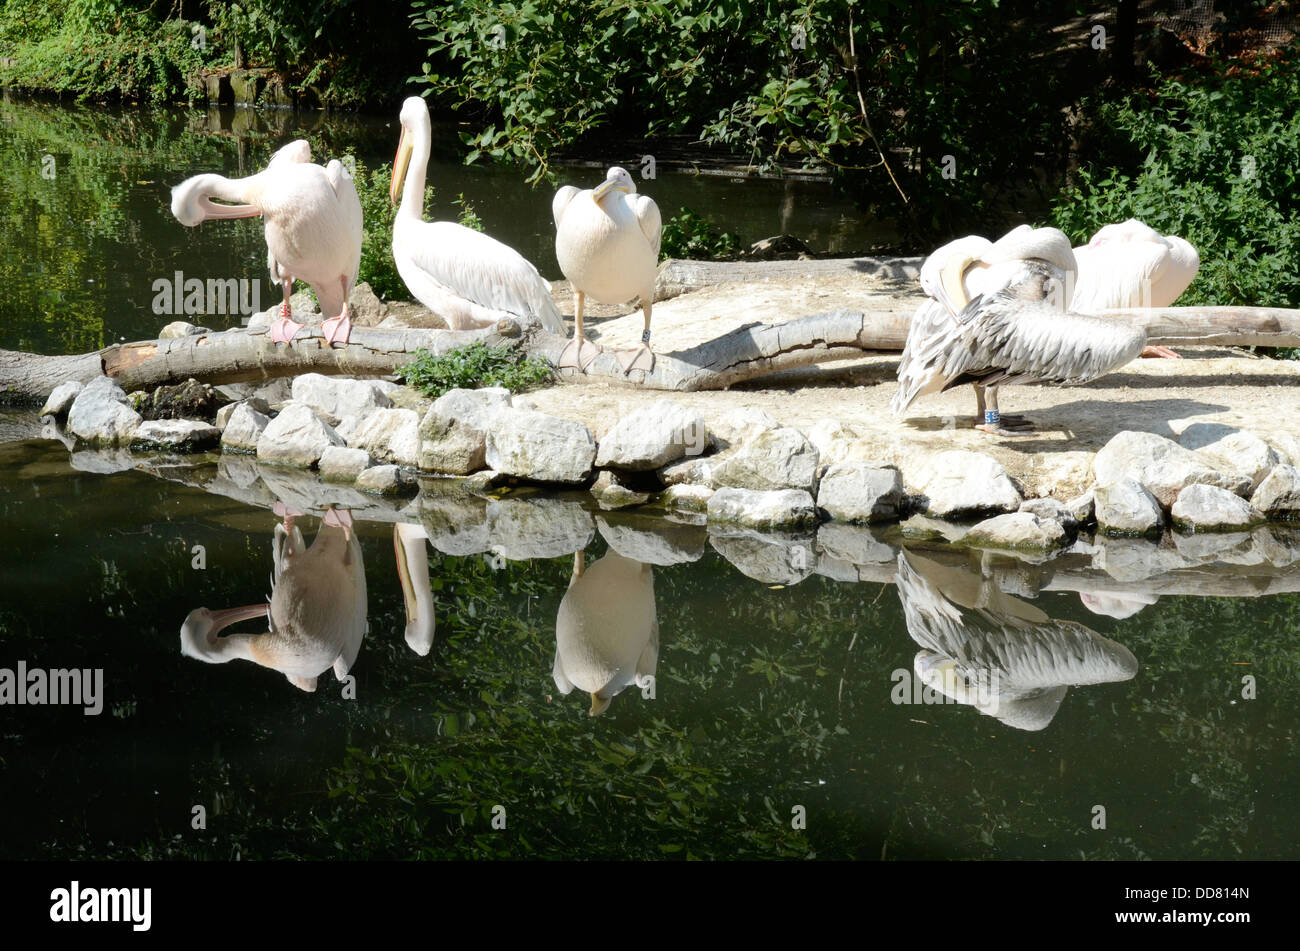 Pelicans in the Zoological Park, Lille, France - Stock Image